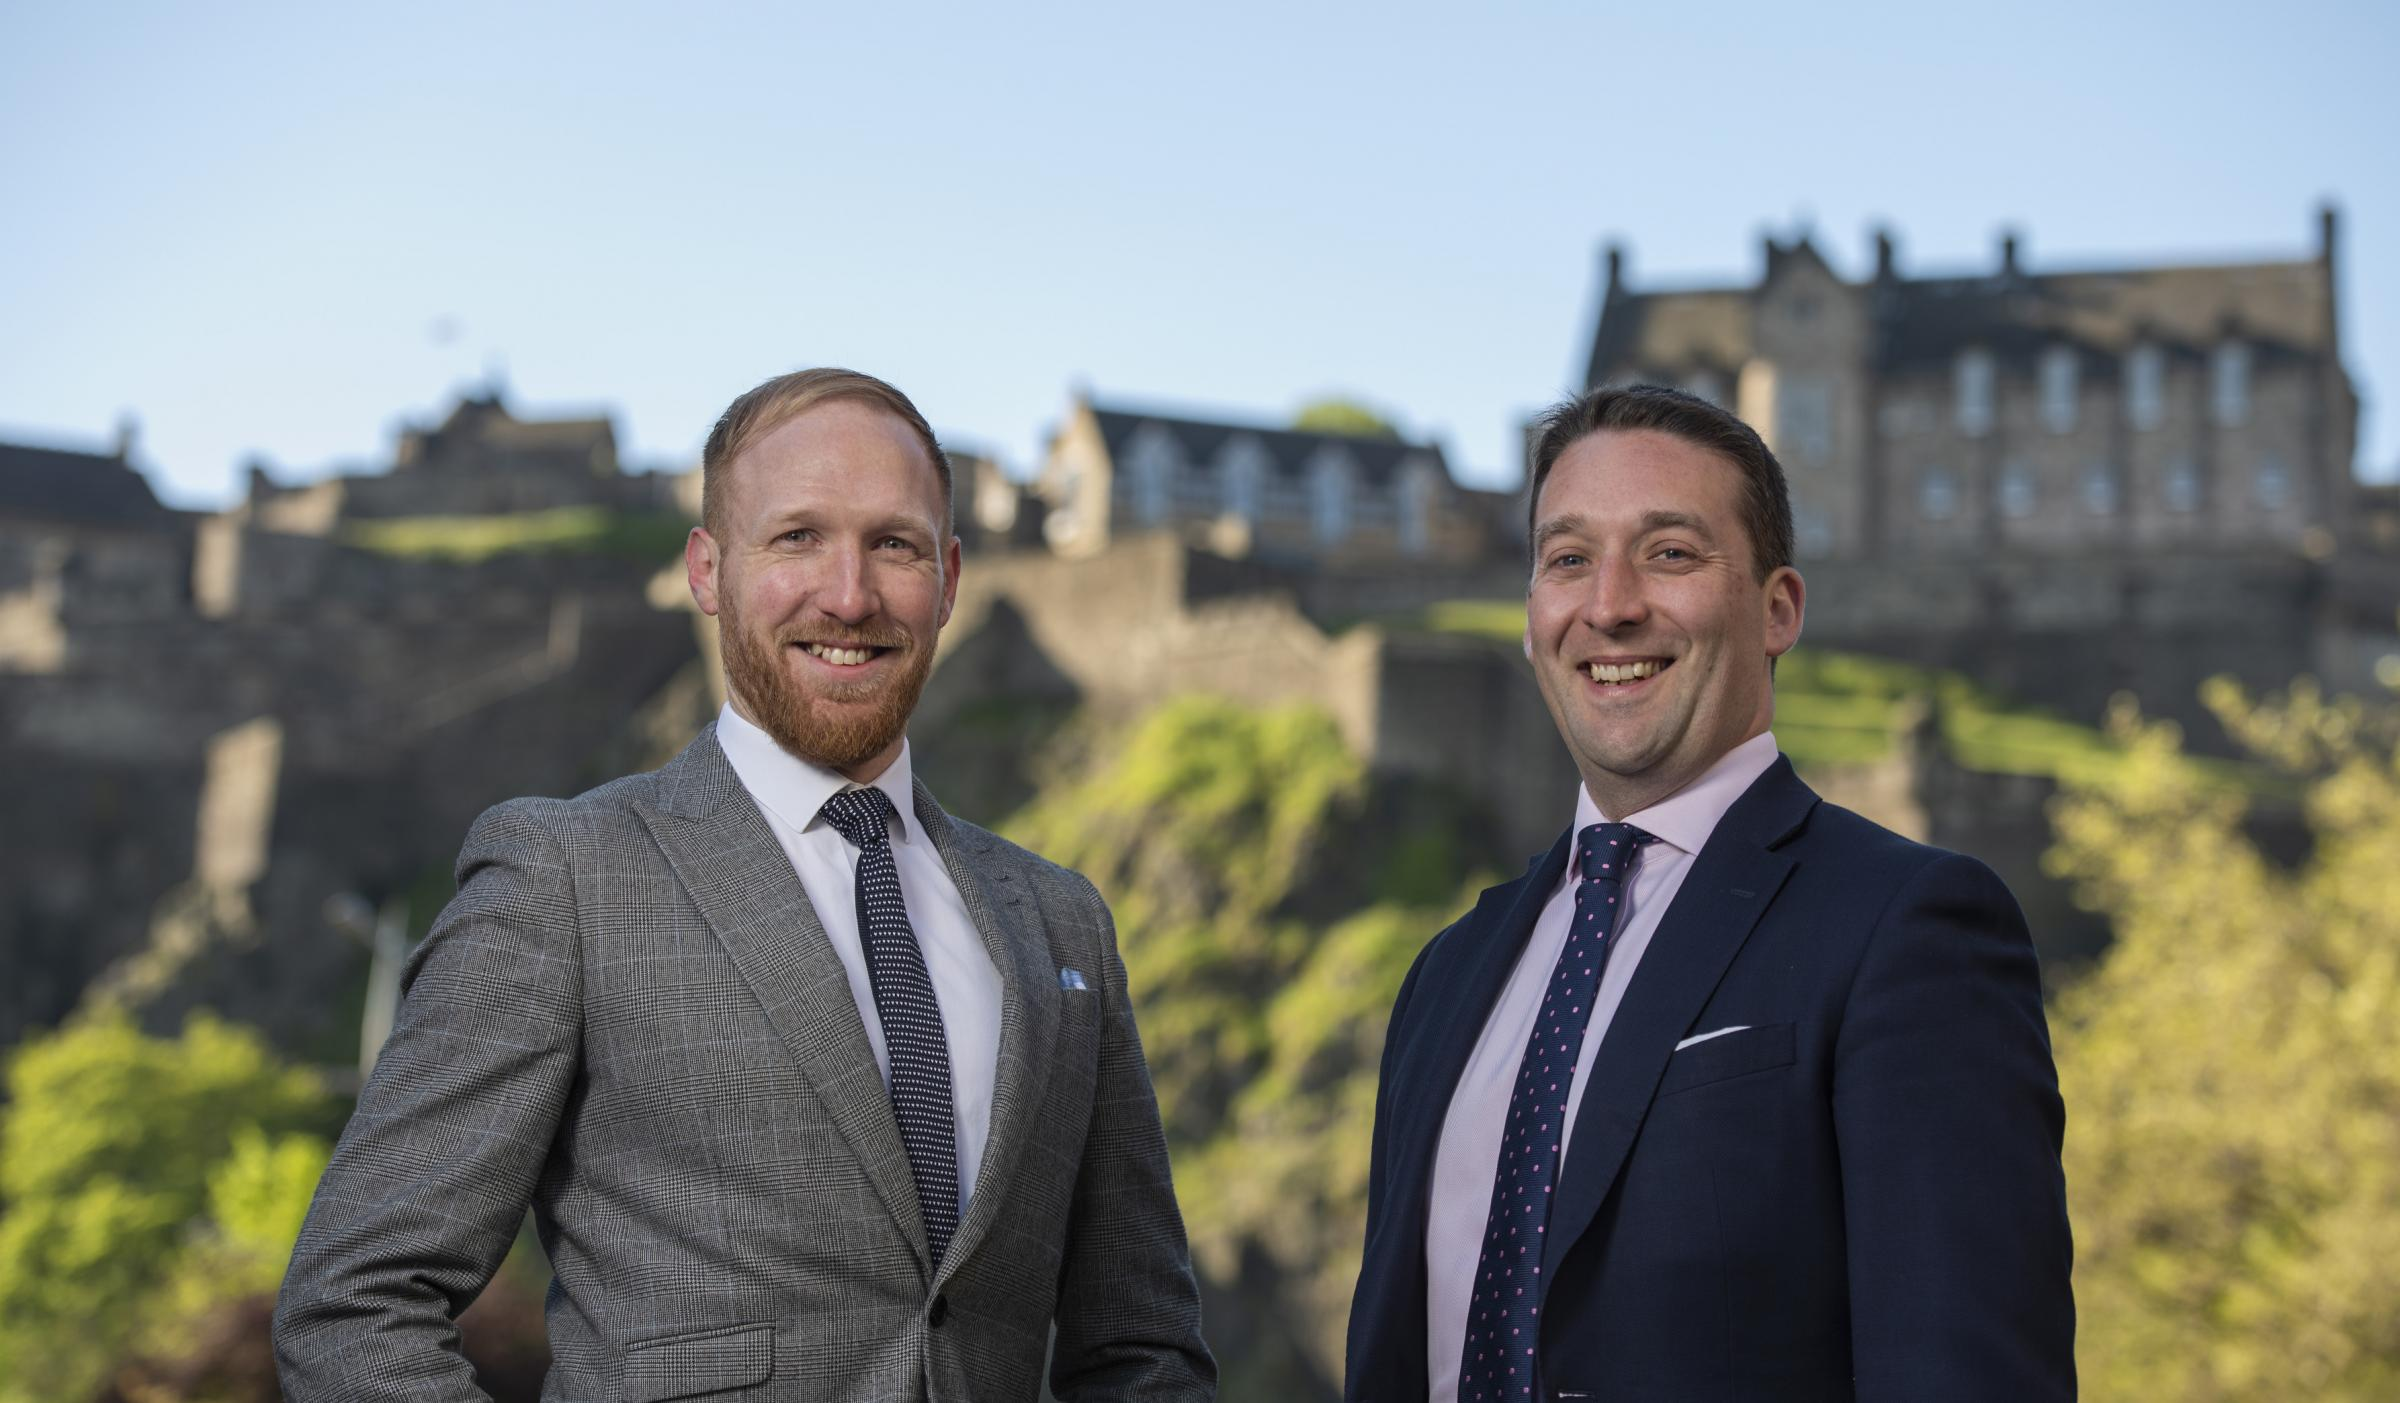 Edinburgh recruitment firm builds national business amid Brexit uncertainty